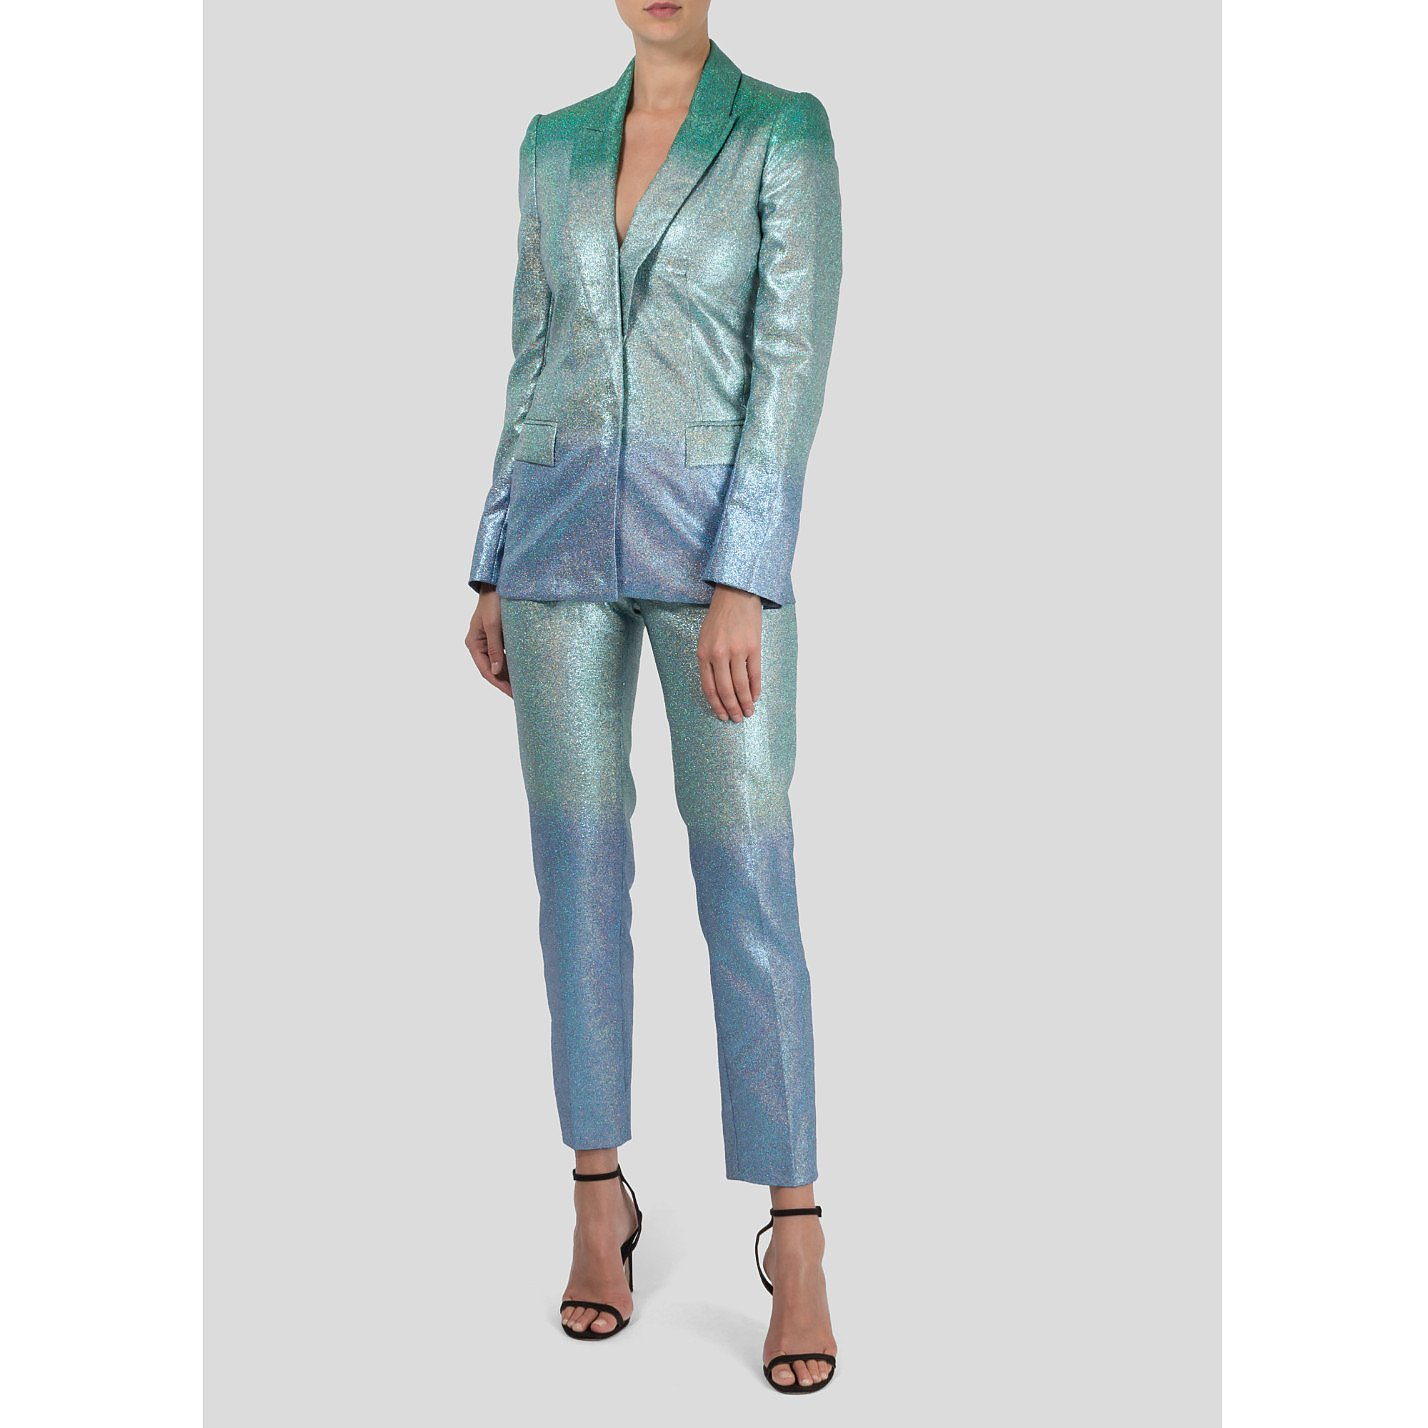 Zoe Jordan Ombre Glitter Blazer and Trouser Set